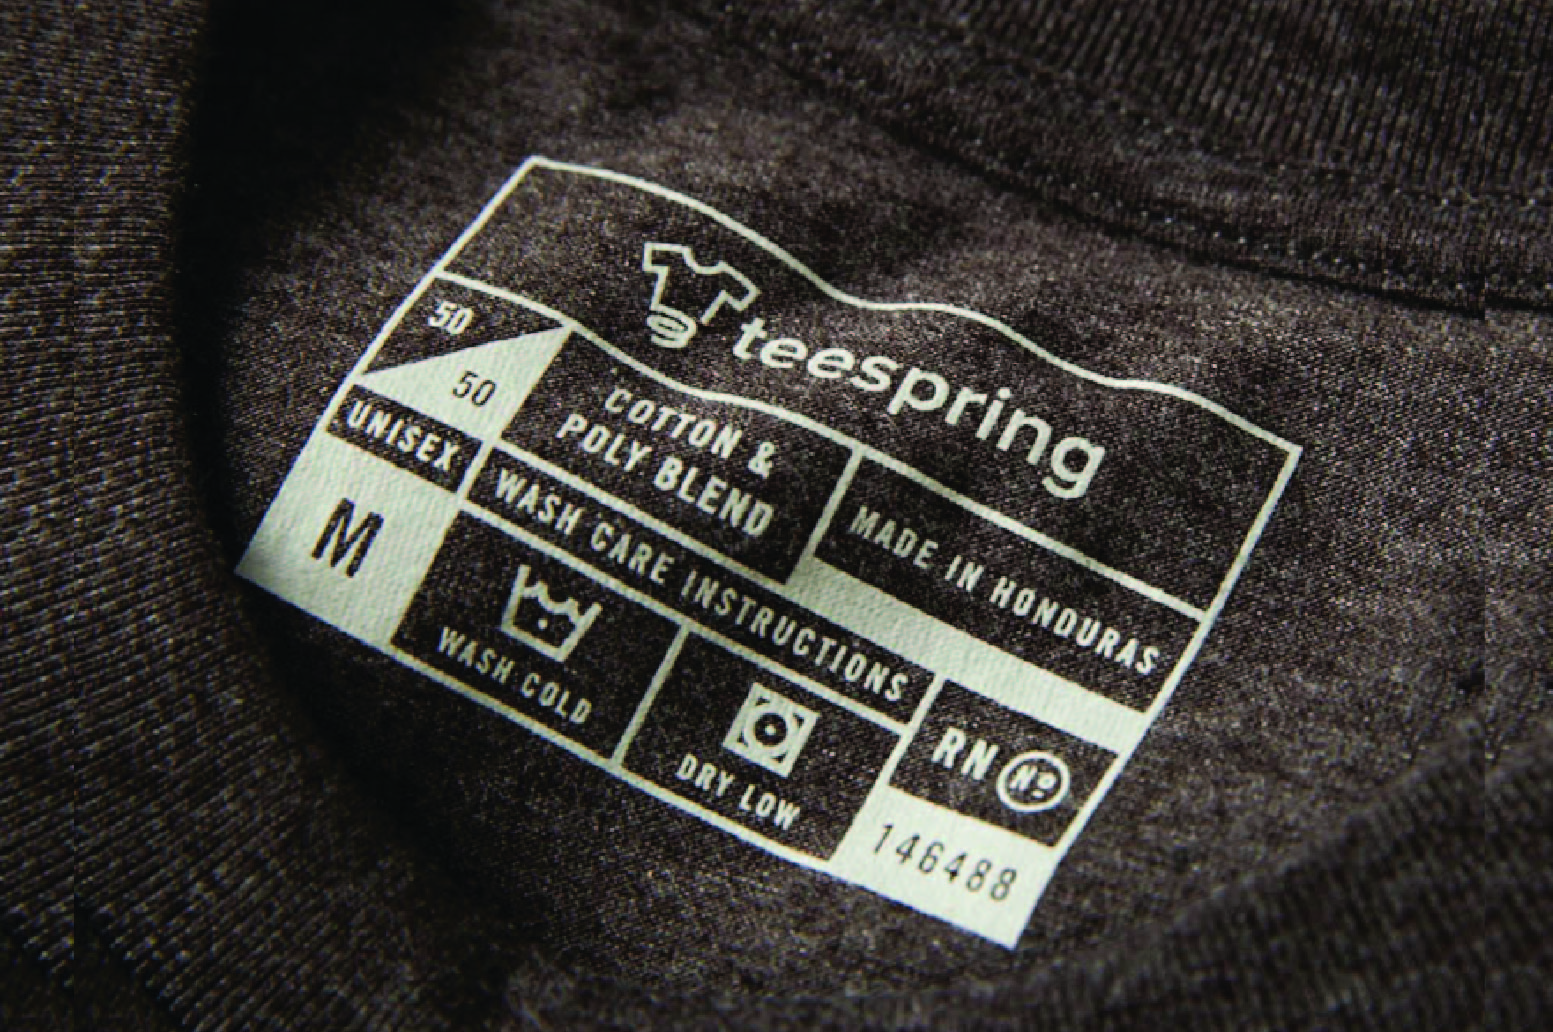 15 teespring internal tag care instructions